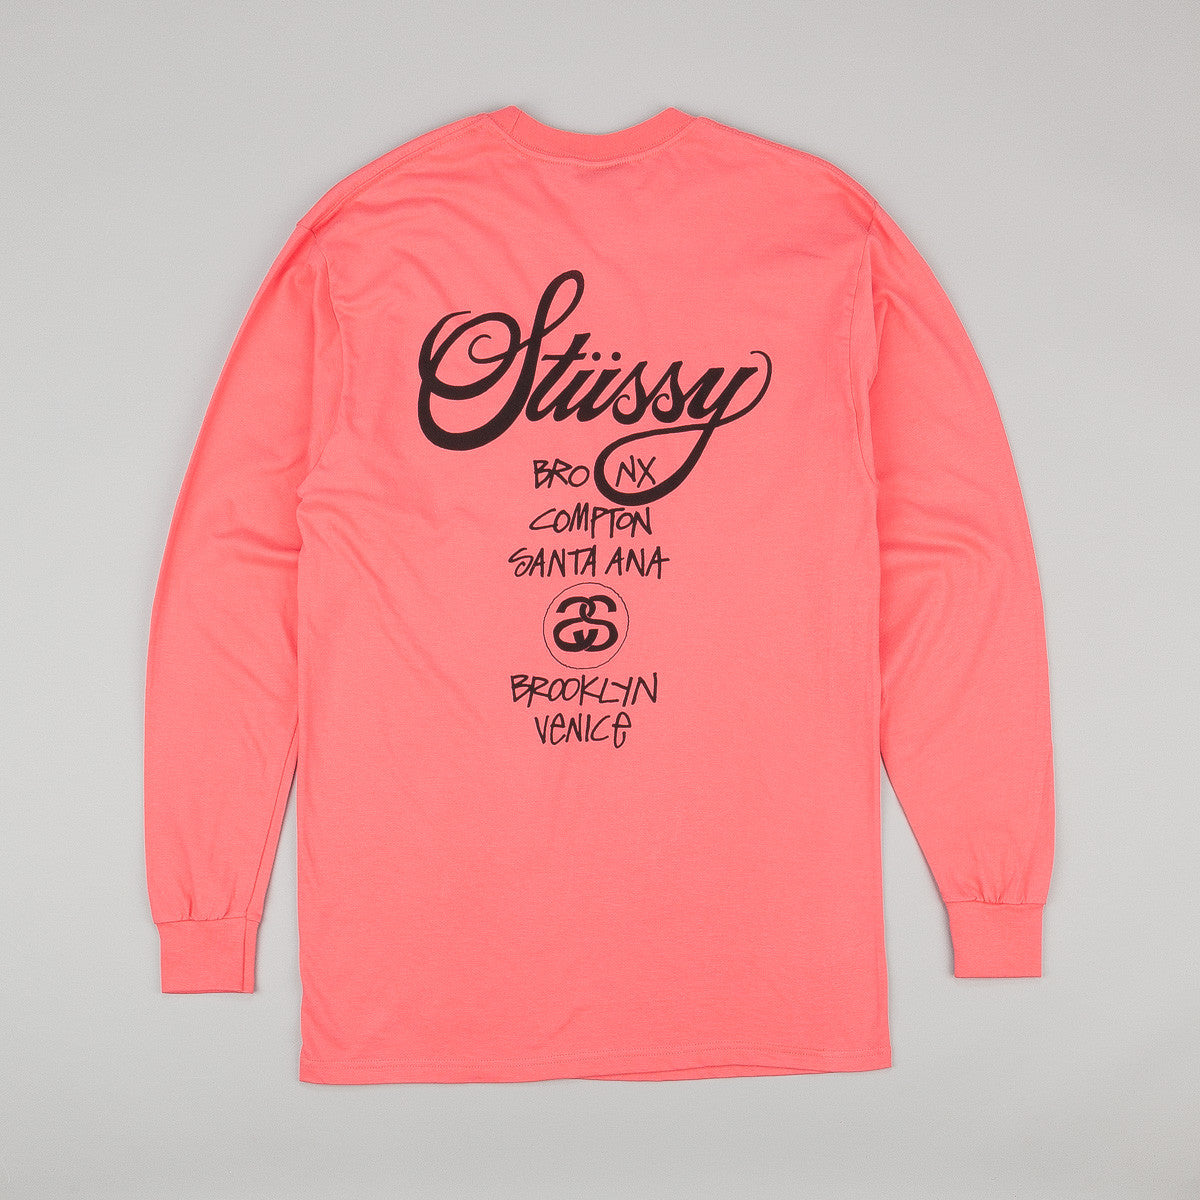 Stussy World Tour Long Sleeve T-Shirt - Pink